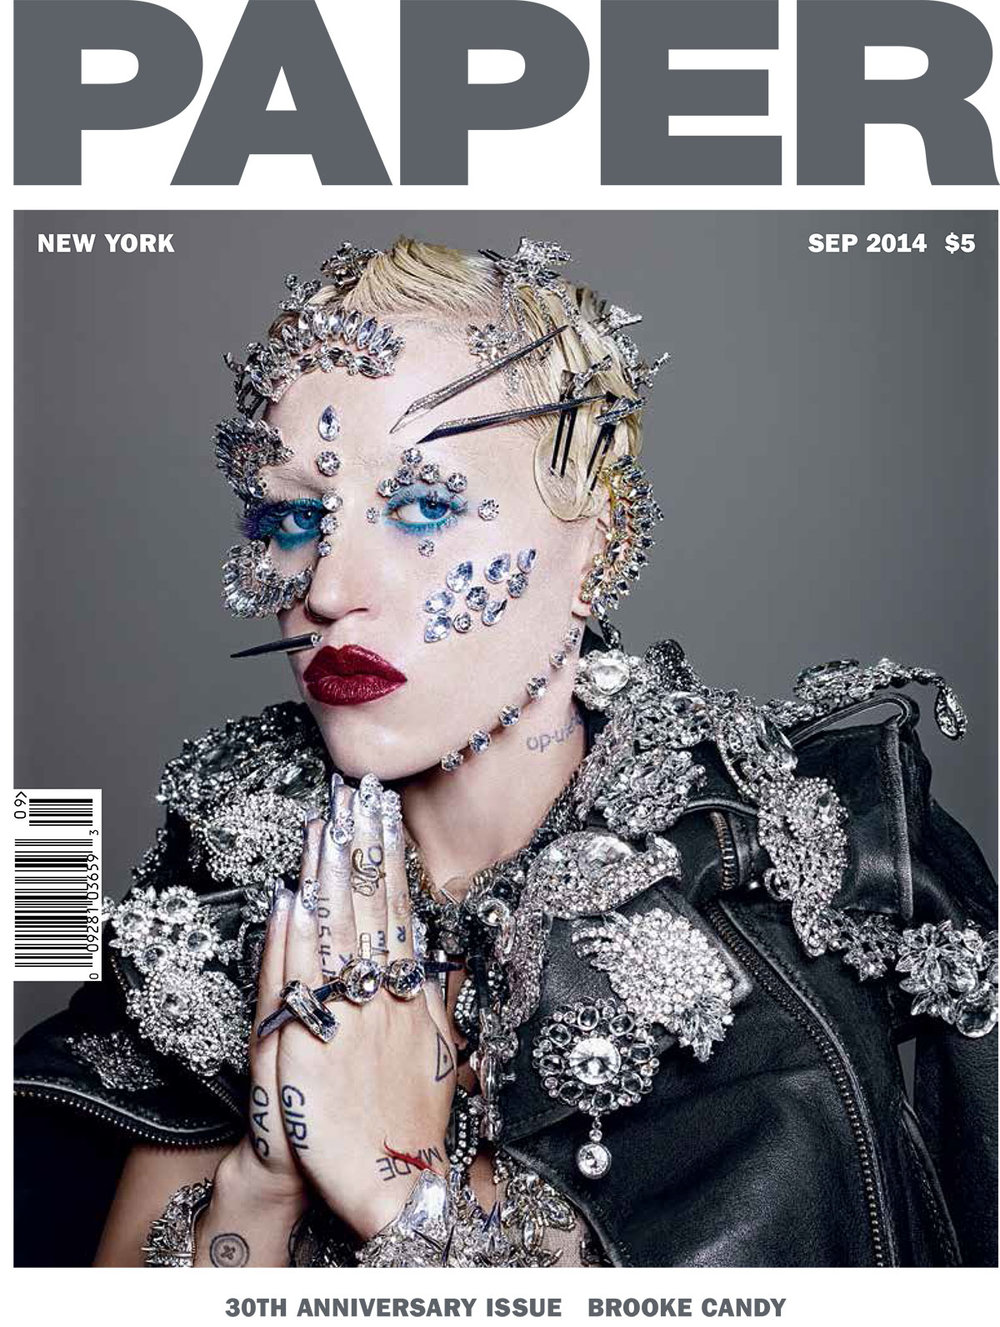 Brooke-Candy-PAPER-Magazine-30th-Anniversary-September-Cover-2014.jpg